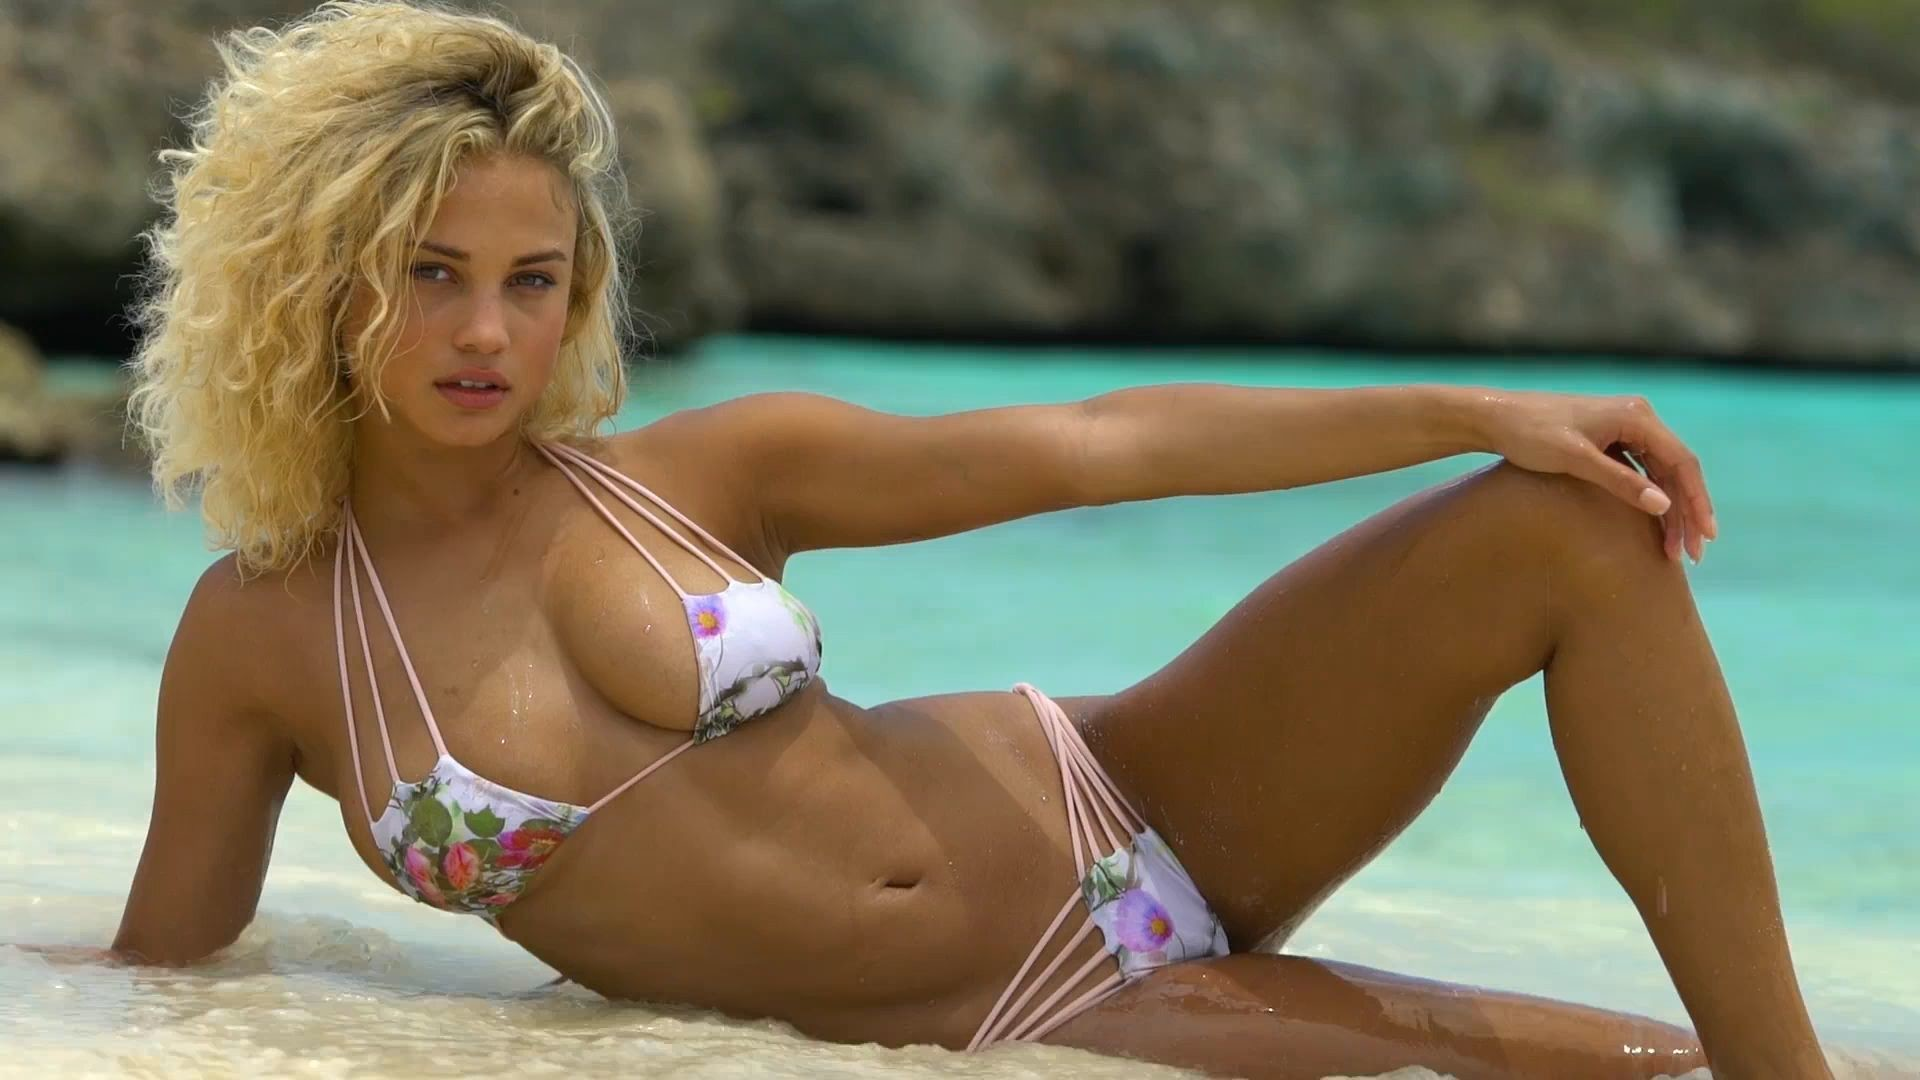 Sports Illustrated Swimsuit Wallpapers 1920X1080 (79+ background